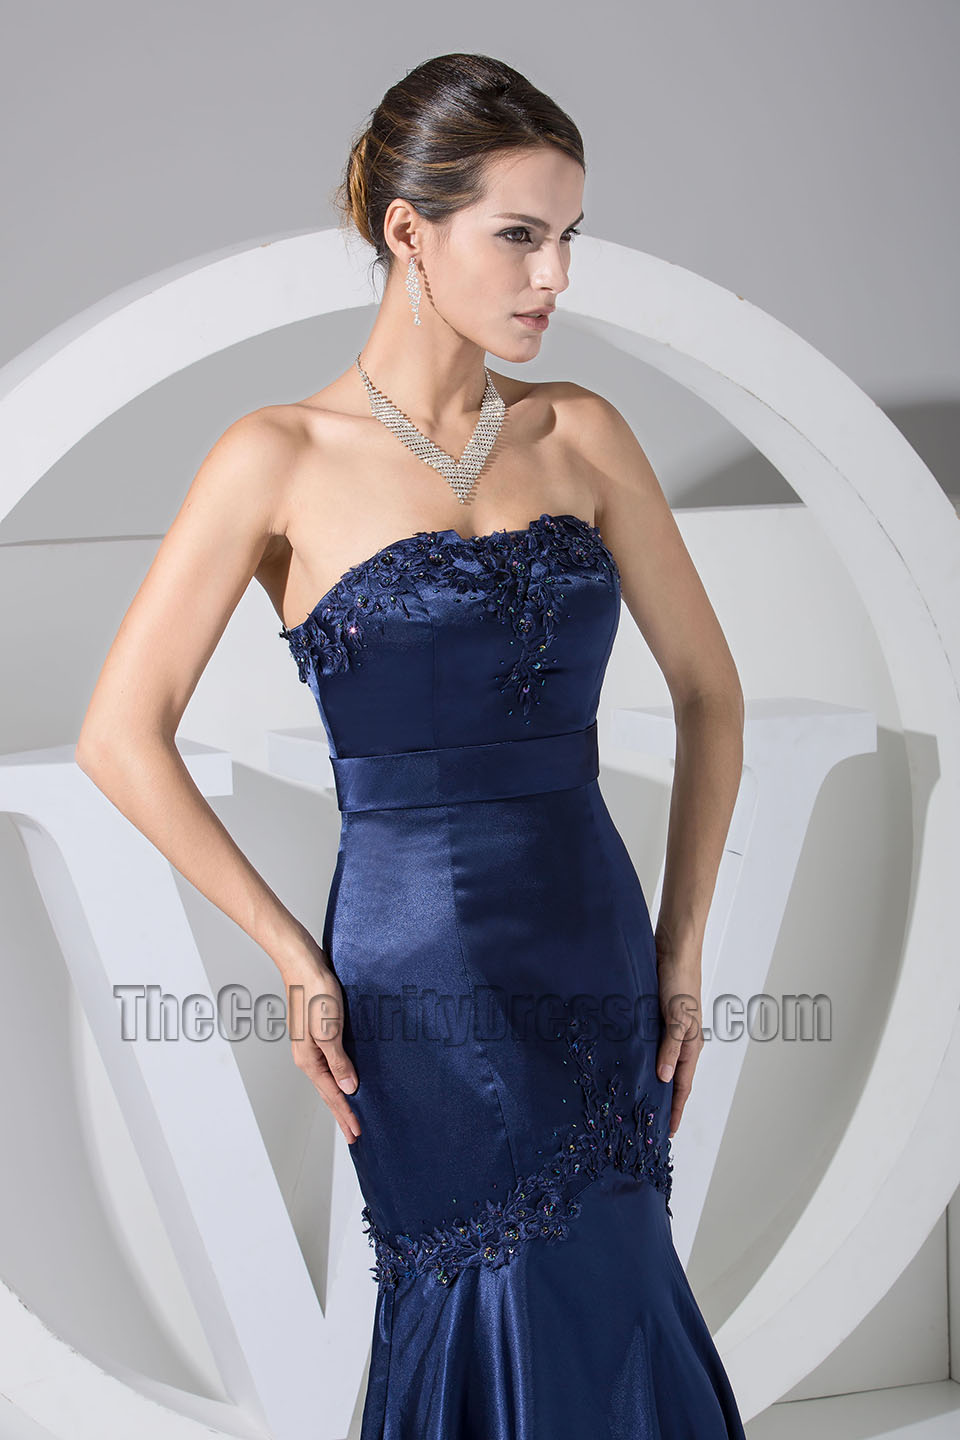 New style dark navy embroidery mermaid formal dress bridesmaid new style dark navy embroidery mermaid formal dress bridesmaid dresses thecelebritydresses ombrellifo Images